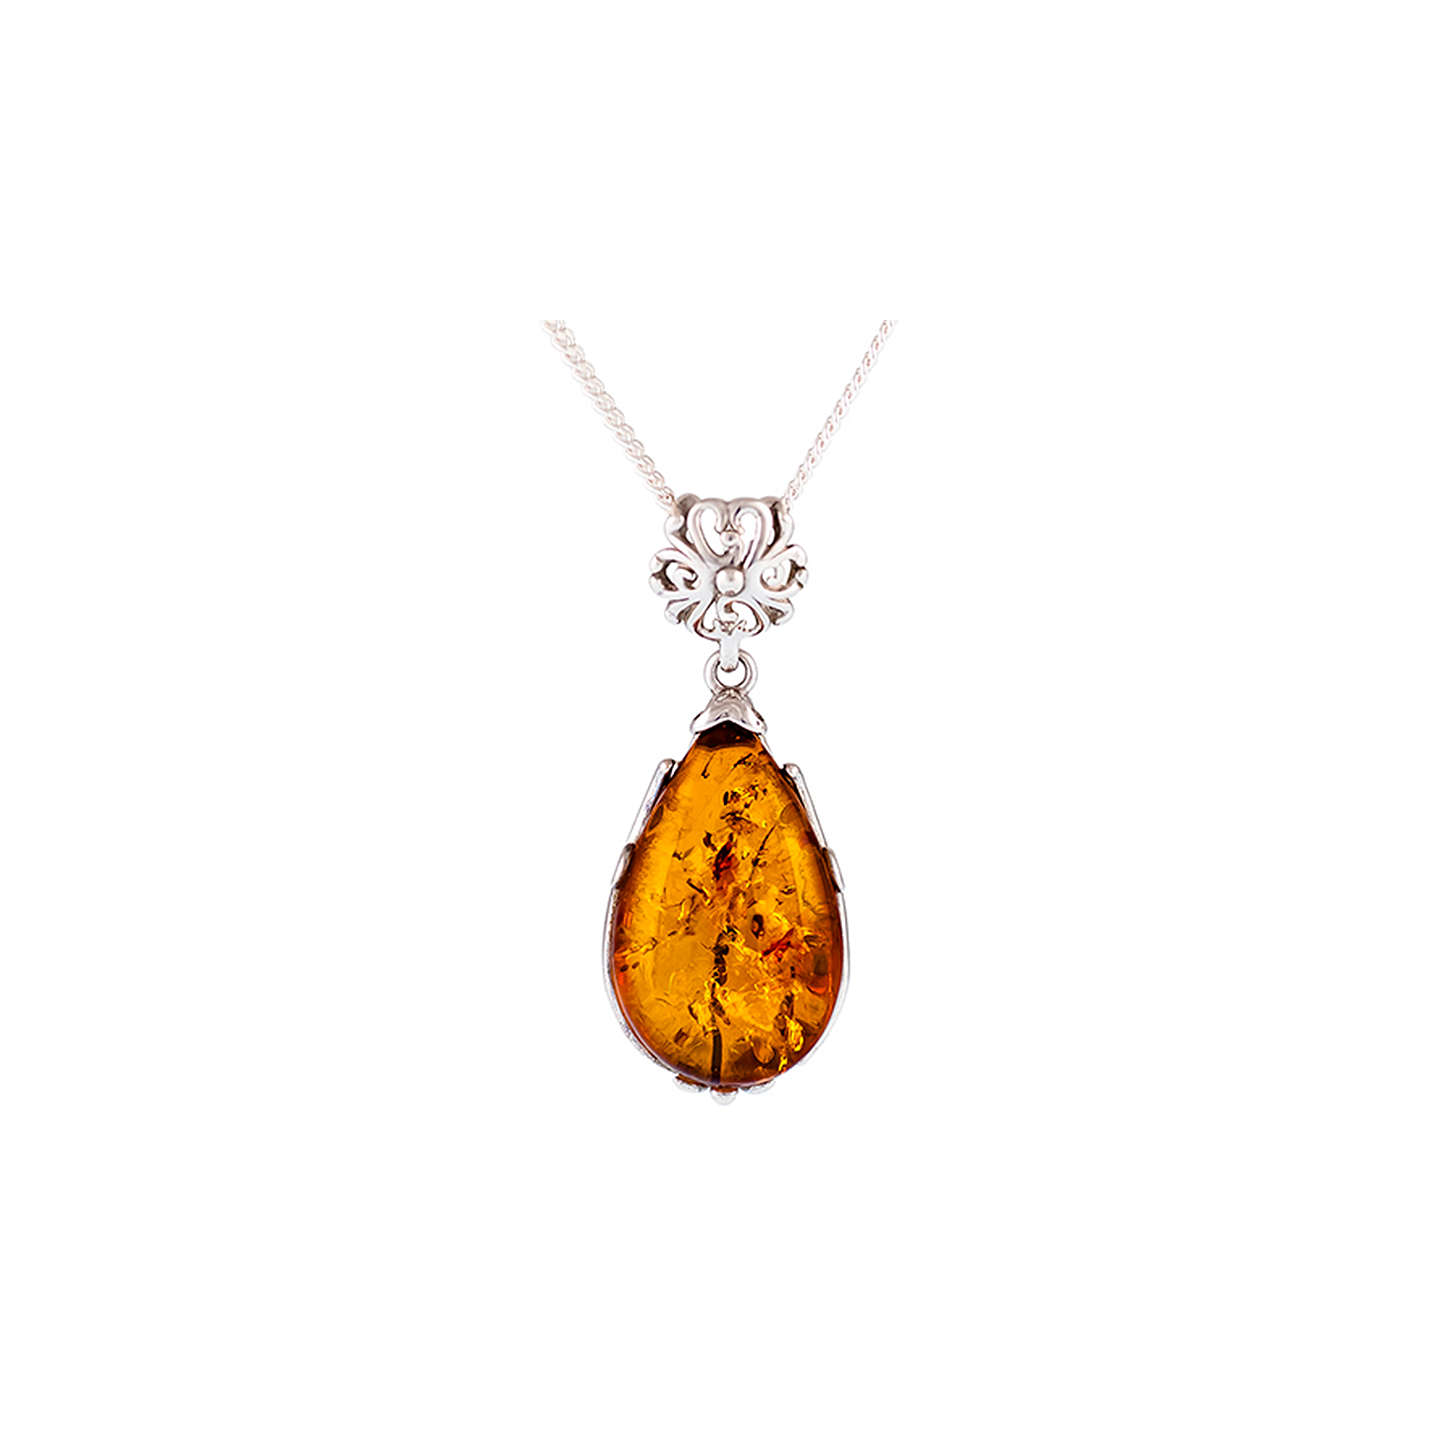 necklaces pendant shaped master for sale at pear diamond necklace jewelry betteridge j solitaire carat id